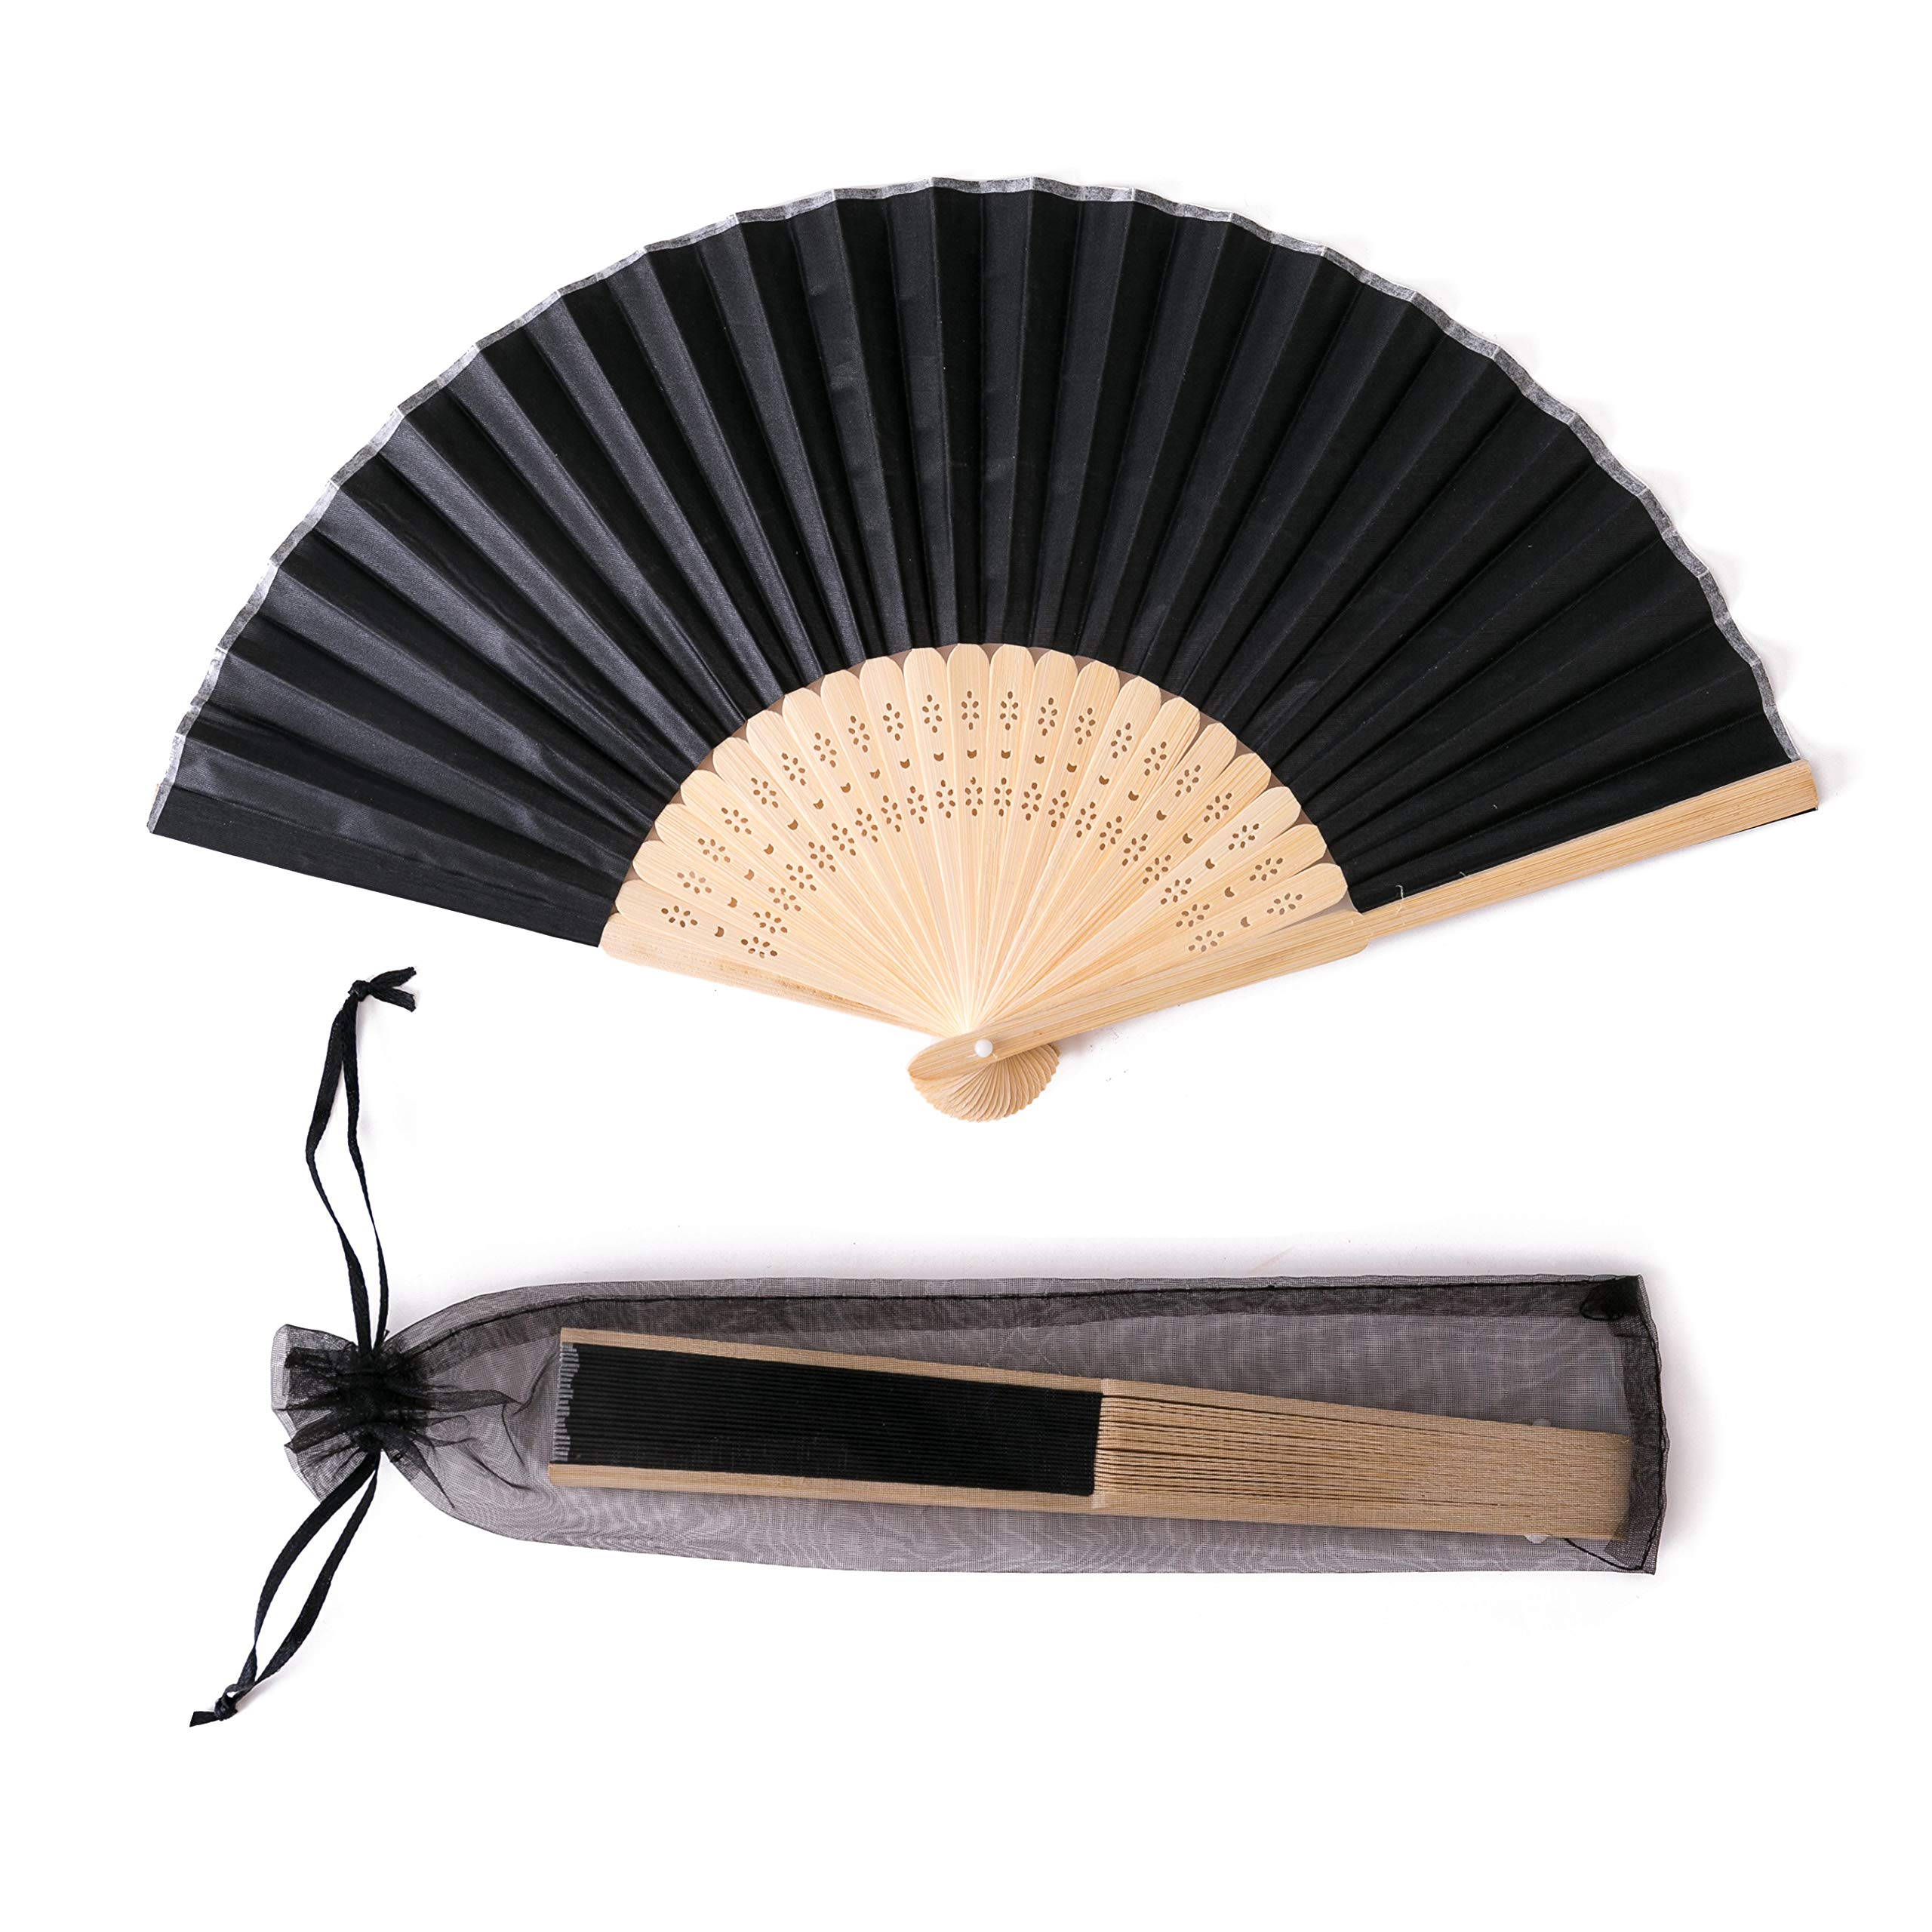 Sepwedd 50pcs Black Imitated Silk Fabric Bamboo Folded Hand Fan Bridal Dancing Props Church Wedding Gift Party Favors with Gift Bags by Sepwedd